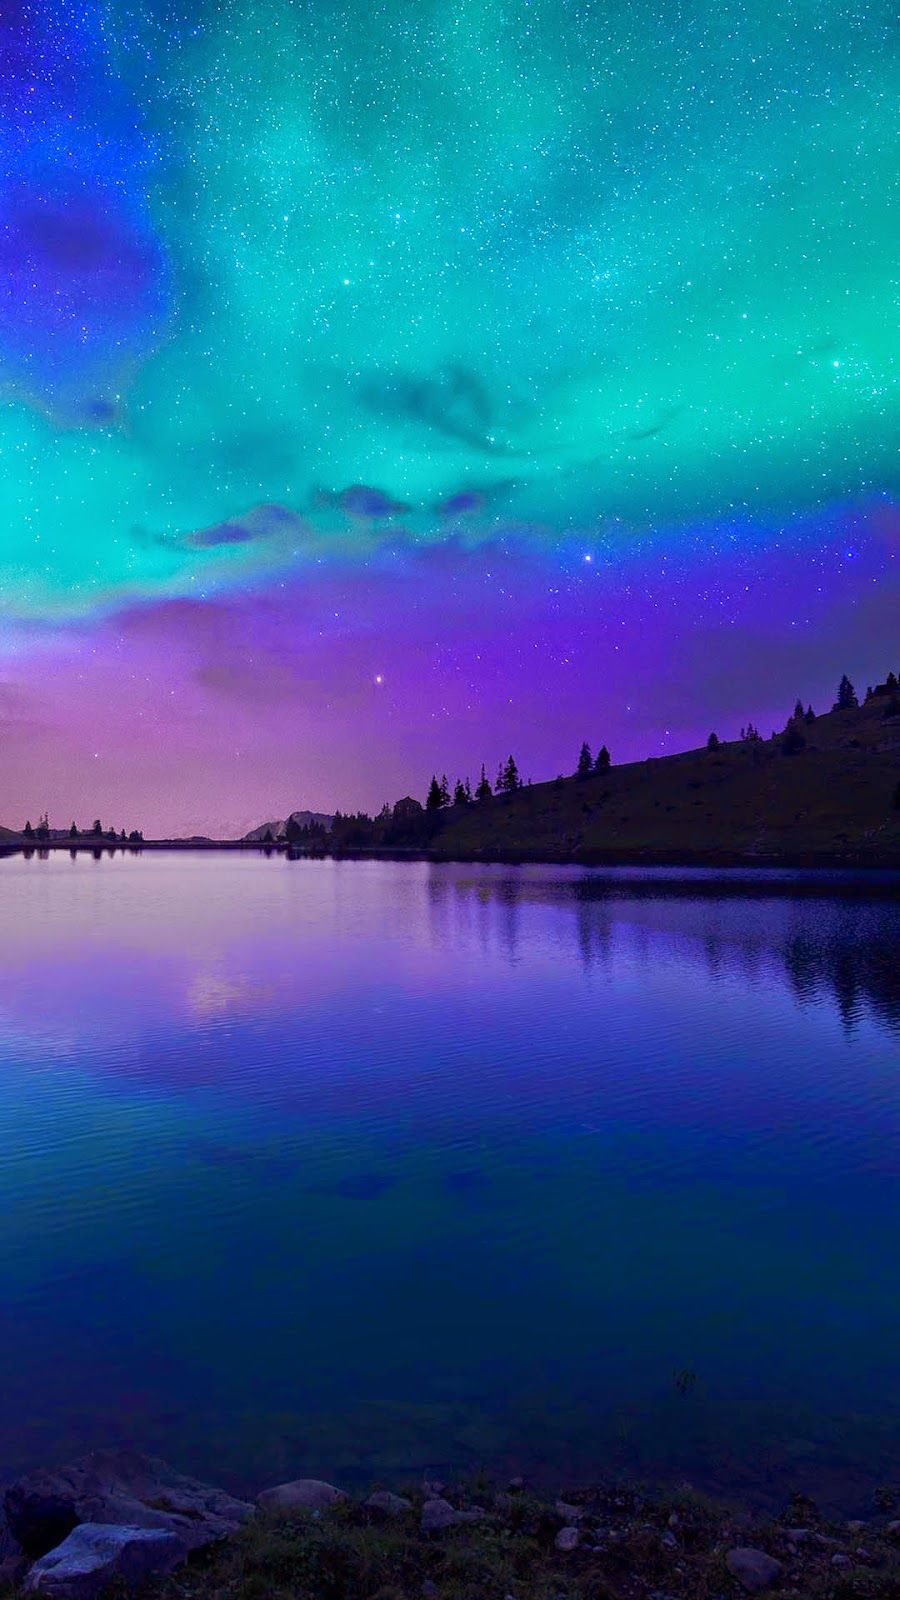 iphone 6, 6 plus wallpaper - night fall at lake aurora | iphone